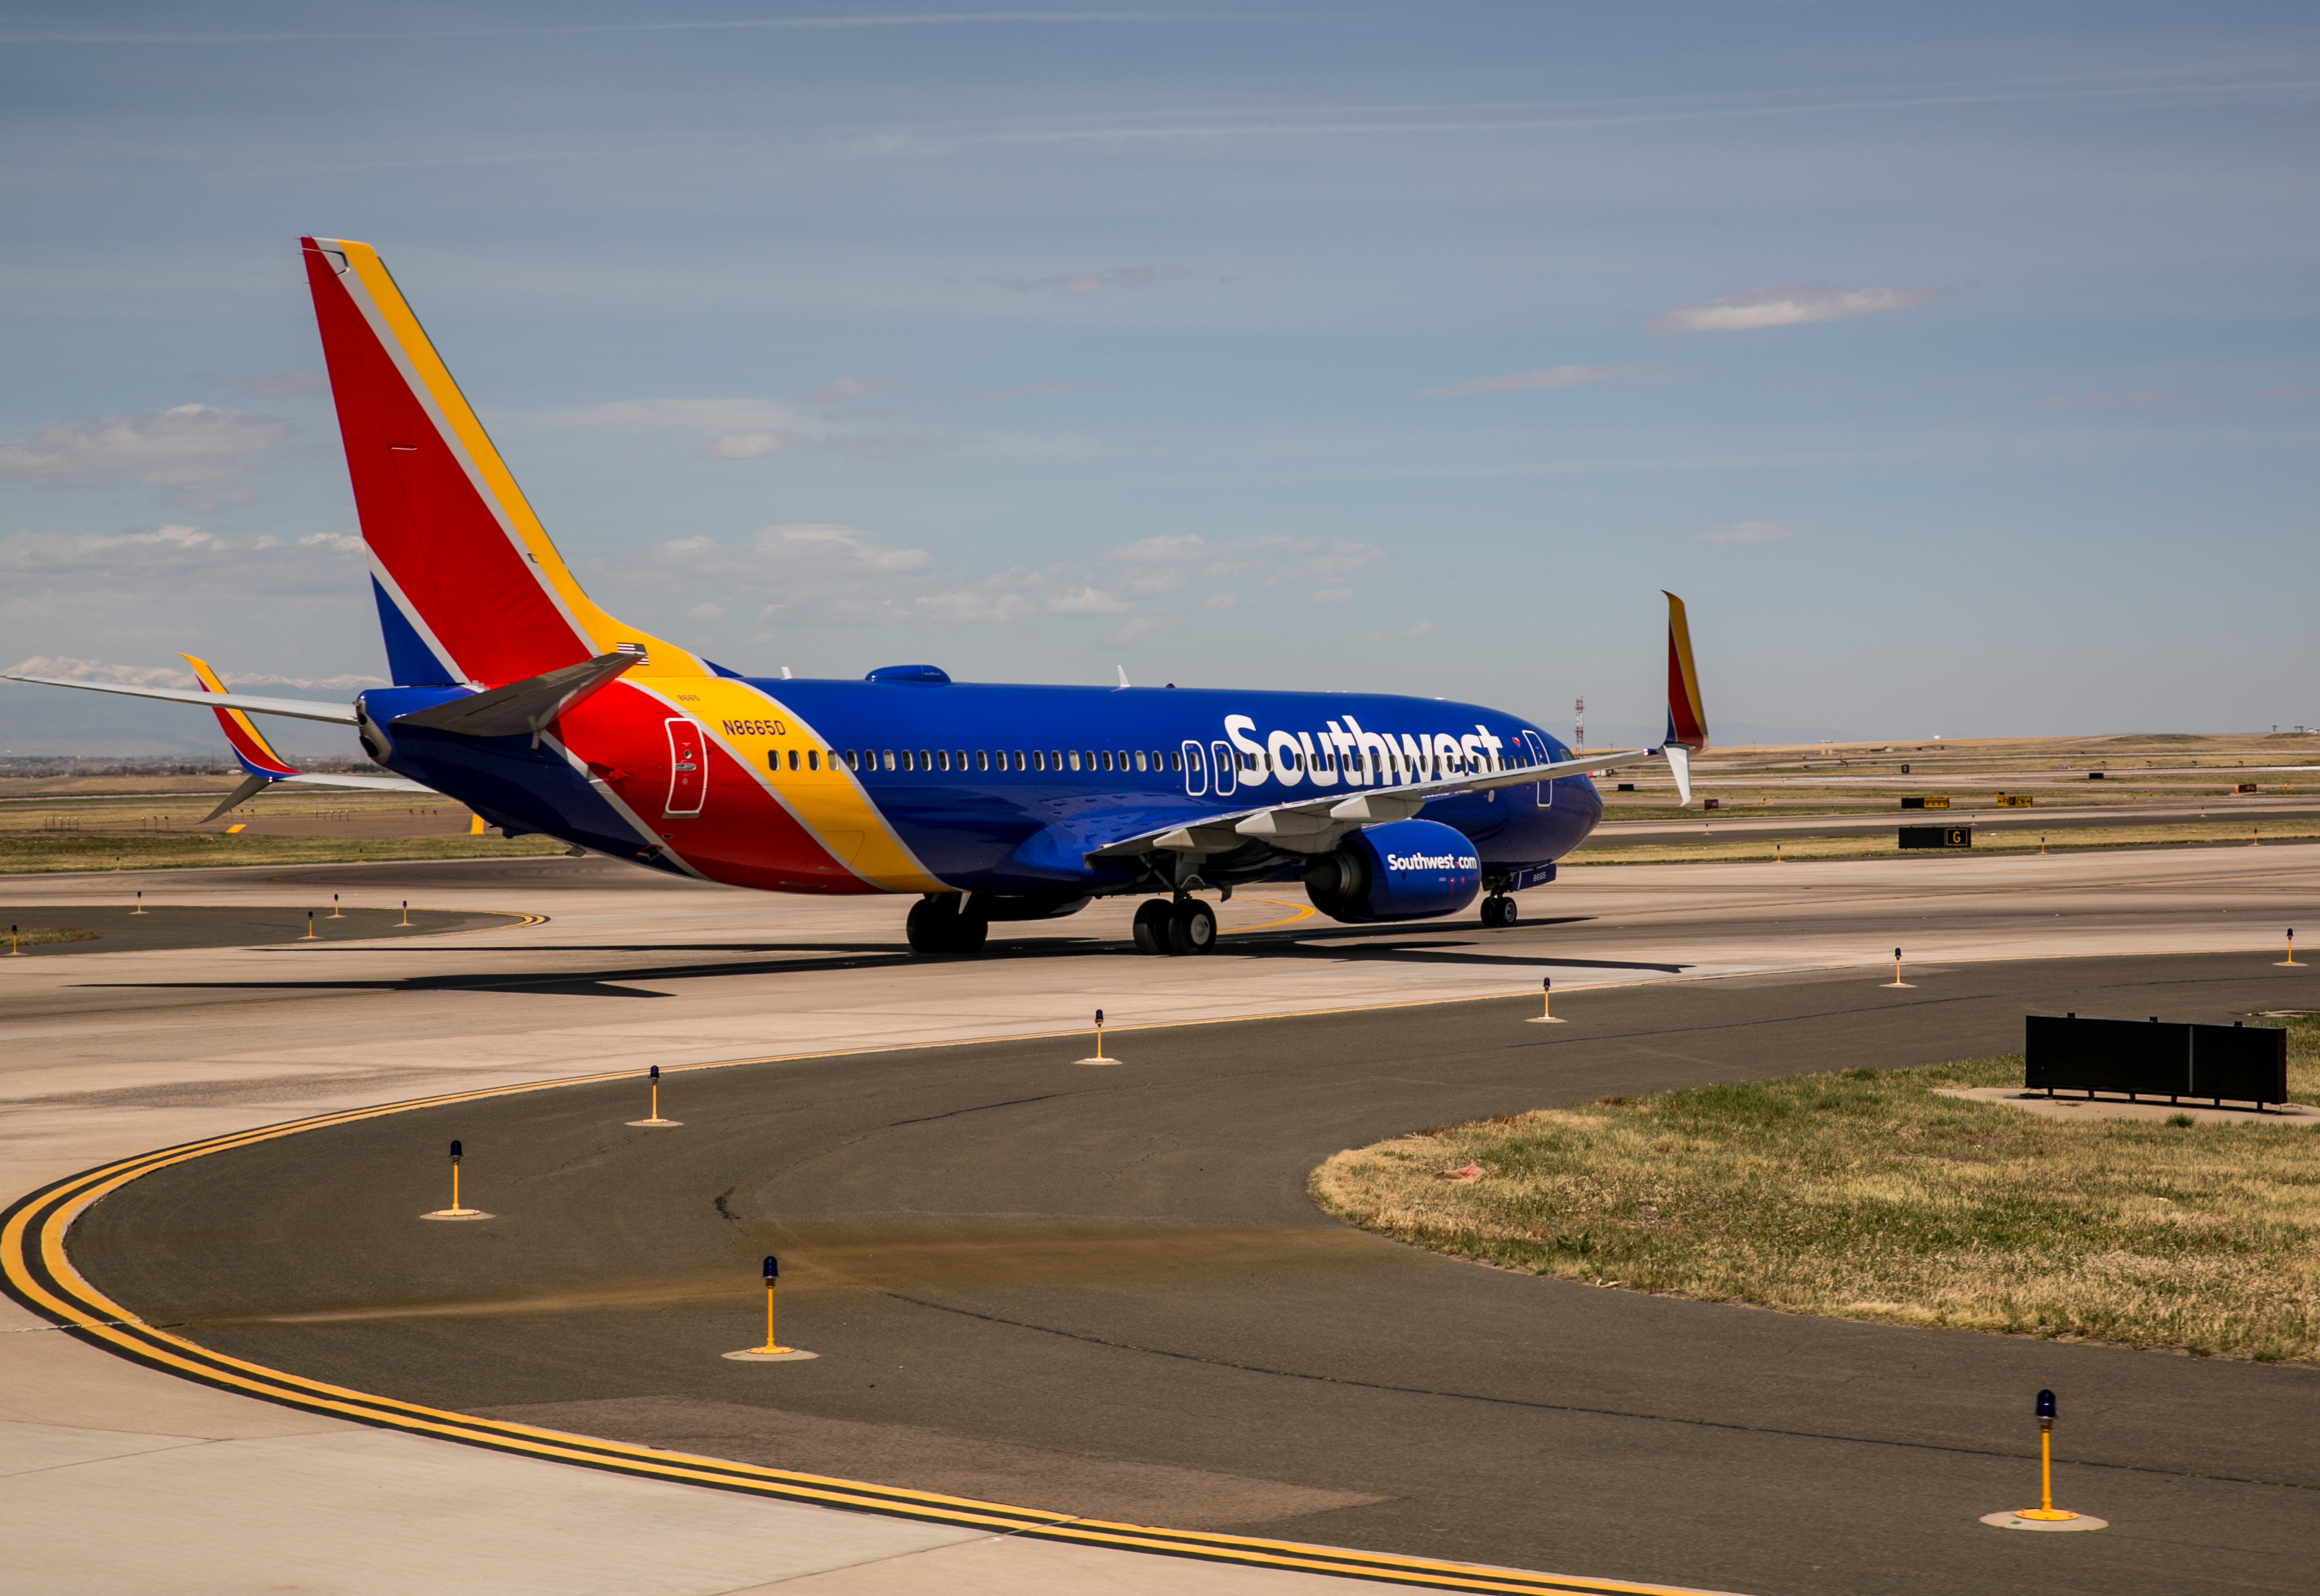 DENVER, CO - APRIL 16:  A Southwest Airlines passenger jet moves off the runway and onto the C terminal at Denver International Airport on April 16, 2017, in Denver, Colorado. Located 25 miles from downtown, Denver International Airport, a United Airlines hub, has become one the largest airport in the United States.  (Photo by George Rose/Getty Images)